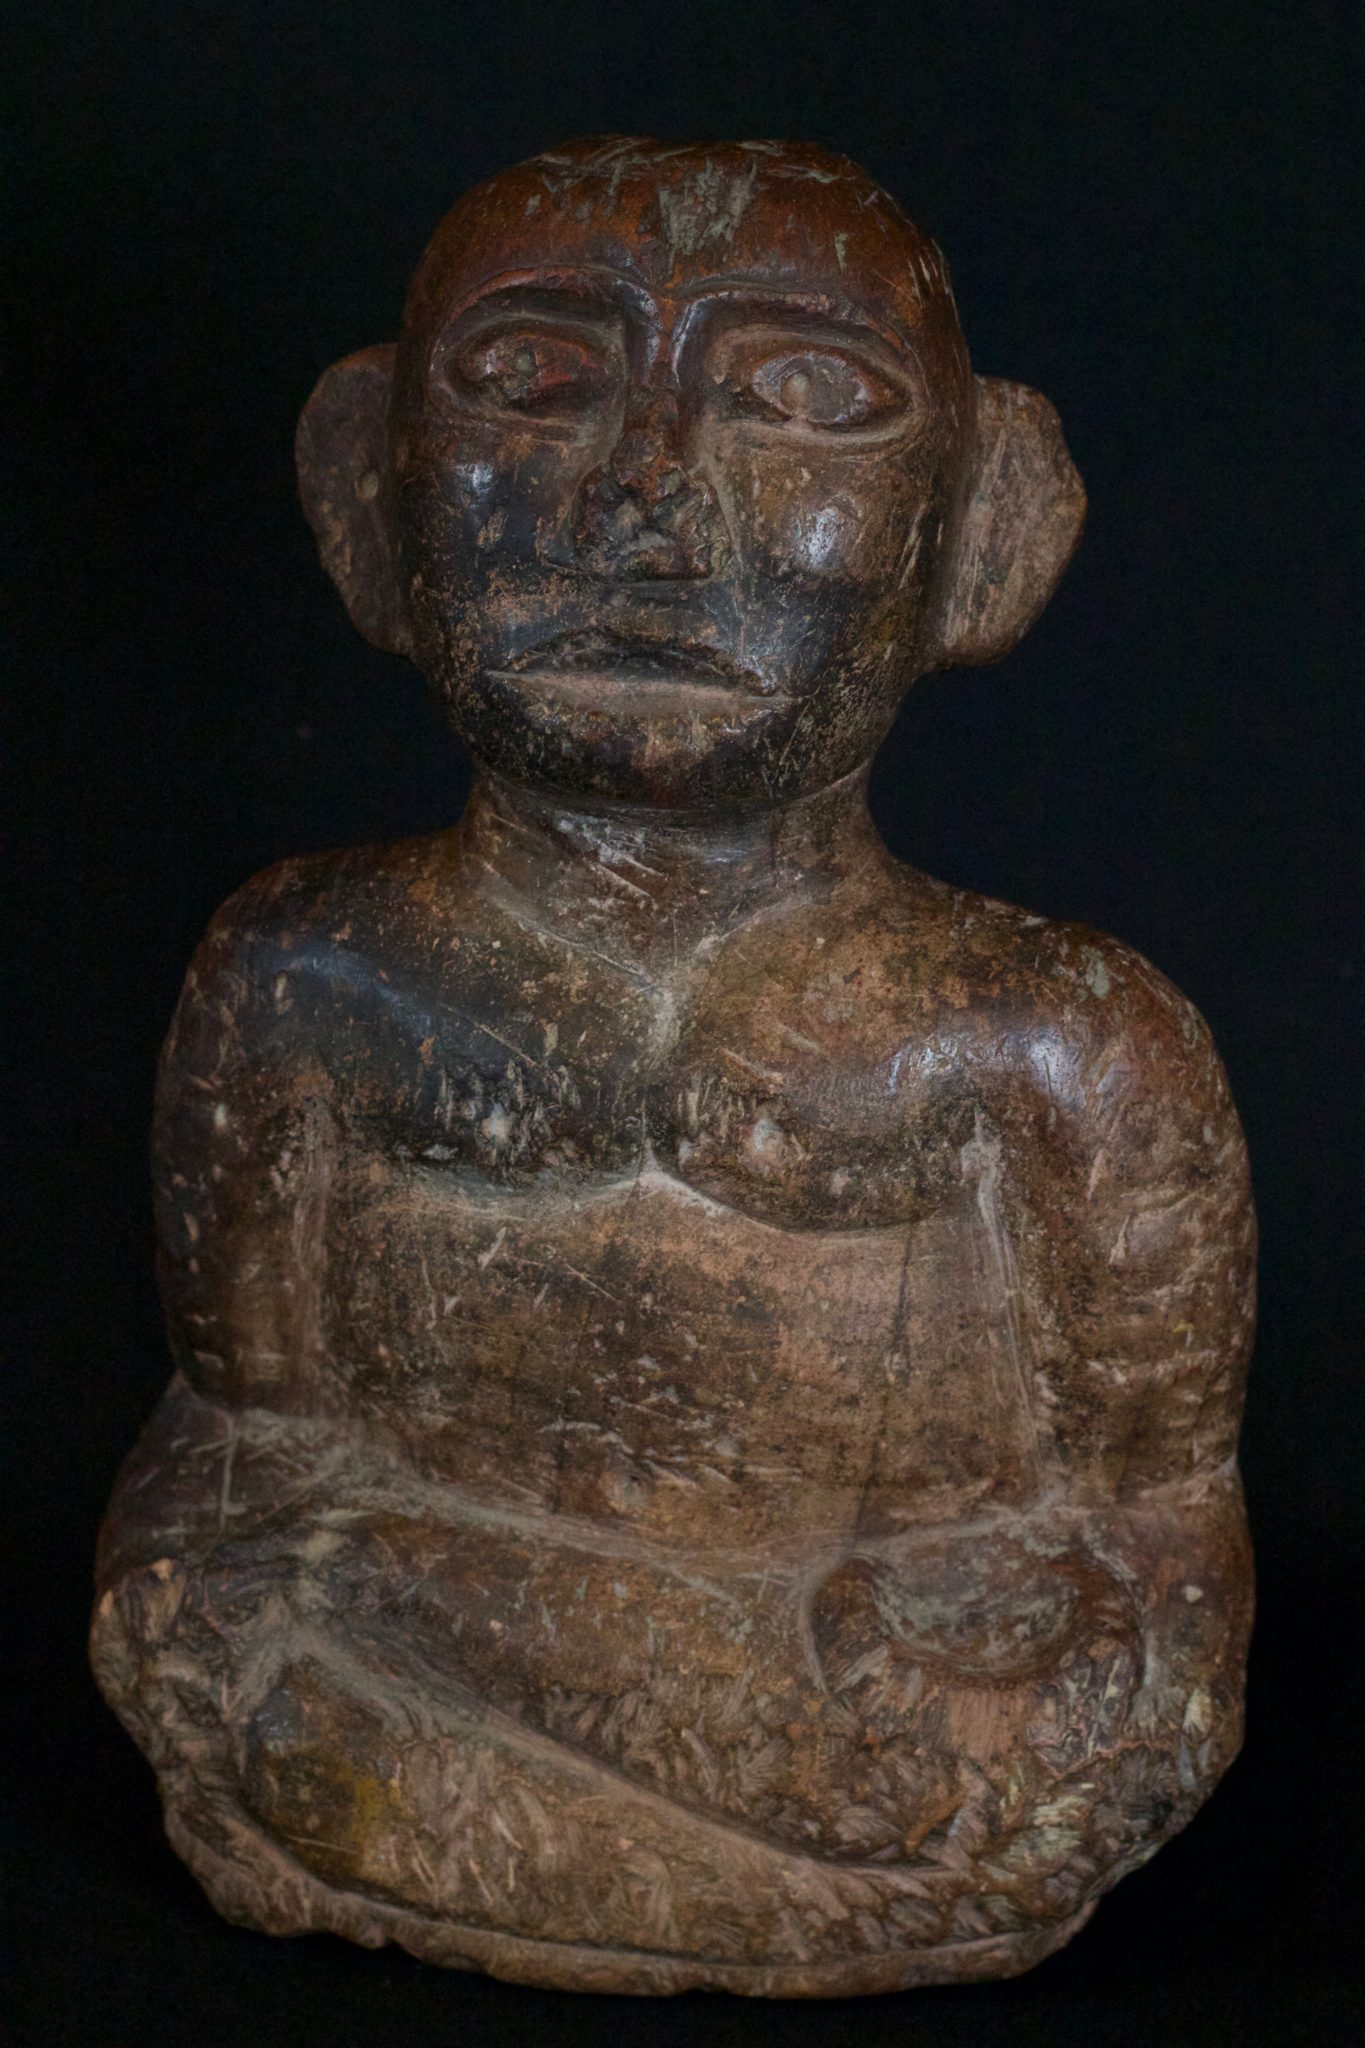 """'Pangulubalang' Shaman Figure (exceptionally rare), Sumatra, Indonesia, Batak, Simalungun, Mid 16th to 17th c, Stone, with patina They are specifically made by the shaman and embodied with a powerful spirit slave. They are used in conjunction with a magical substance, pupuk - a magical substance which is the embodiment of earthly suffering, destruction, hate and anger - which required special ingredients and a long and intricate preparation ritual. The purpose of this was to imbue the statue with the power to ward off evil spirits, to prevent disasters and as a dynamic healing tool. For healing, small bits of the statue itself were chipped off of corresponding body parts and made into a potion. 12"""" x 7 ¾"""" x 3 ½"""", Price on request"""